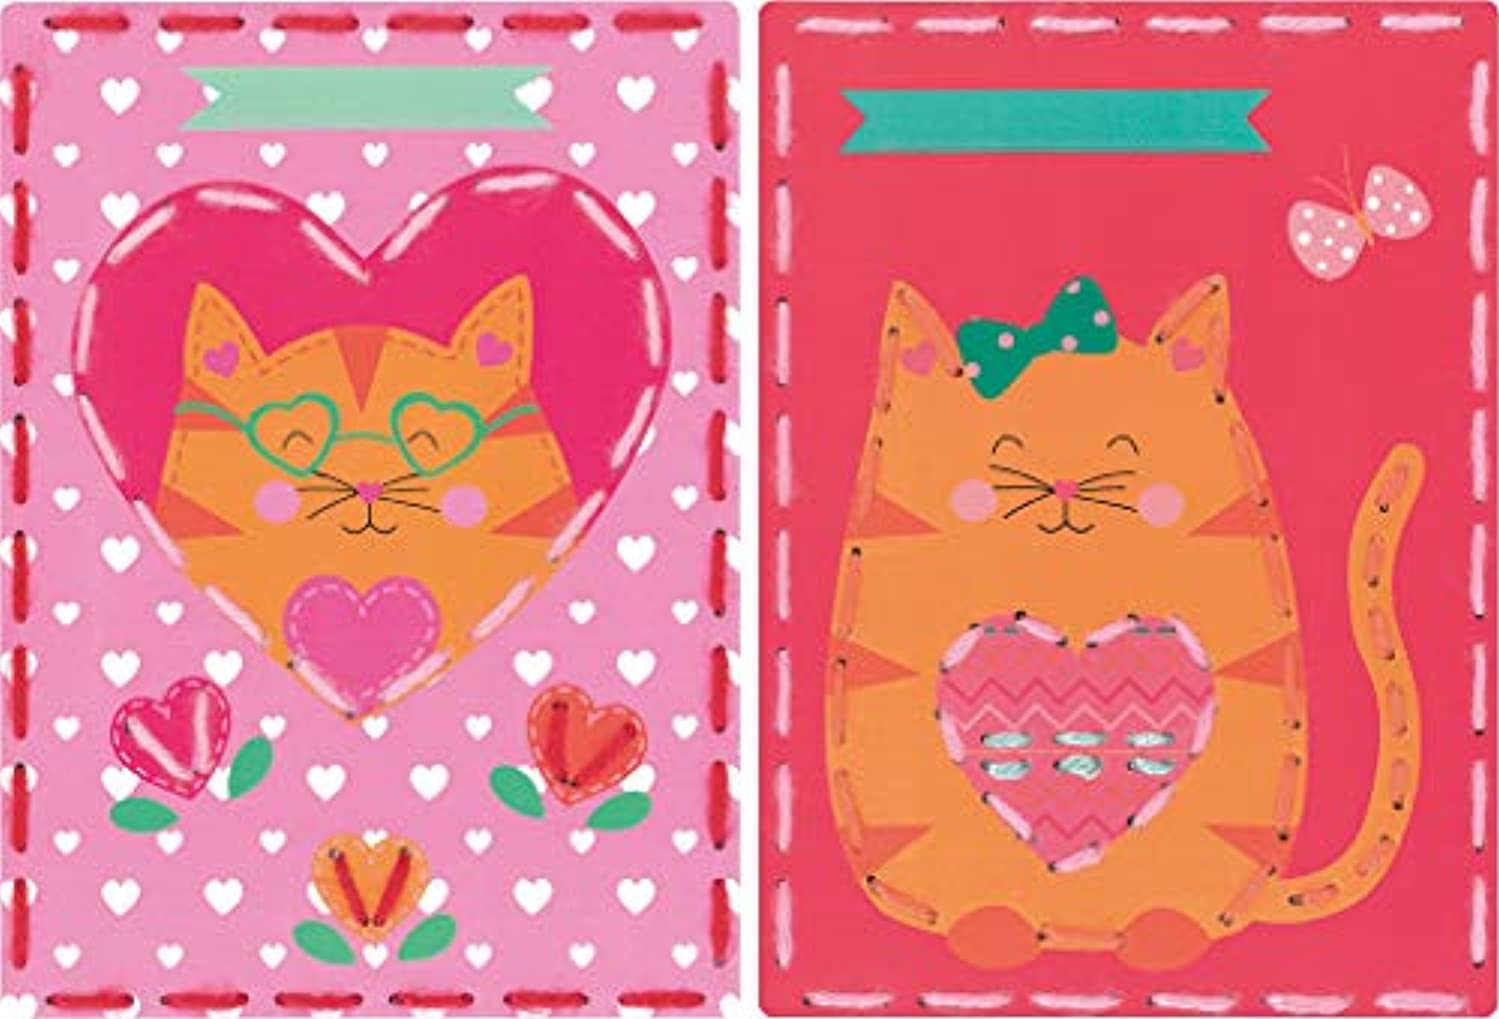 Vervaco Kits 4 Kids Cat & Panda Embroidery Cards Kit (Set of 2), 7.25